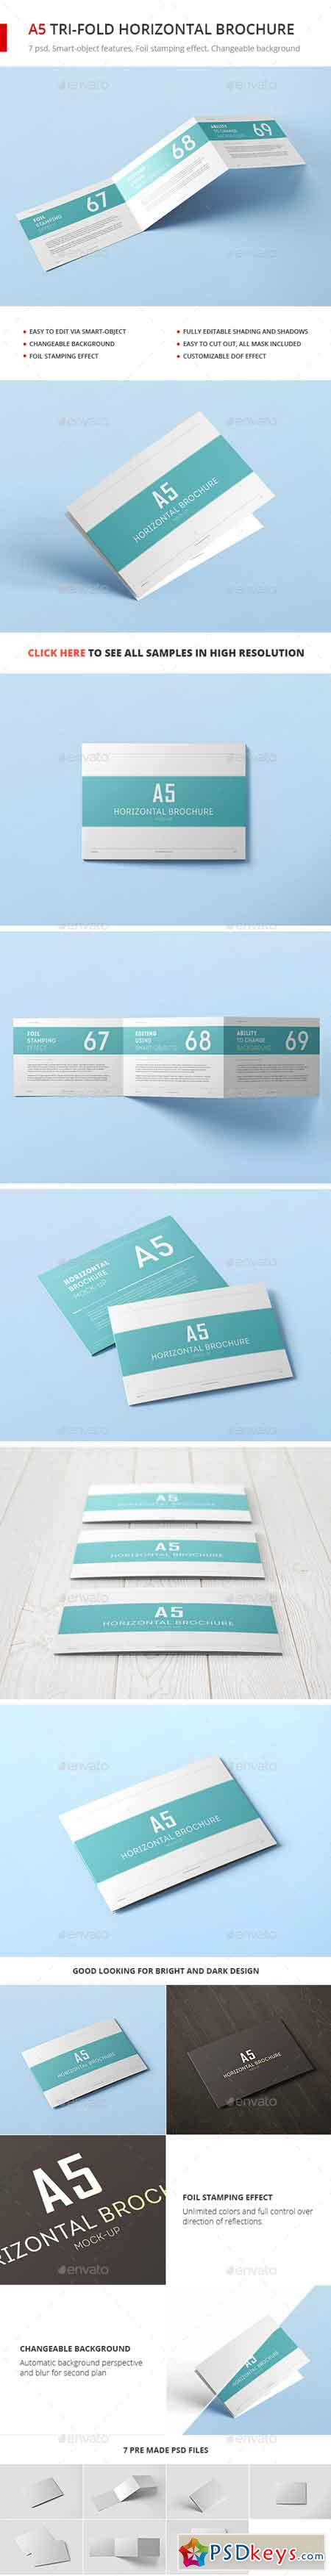 A5 Tri-Fold Horizontal Brochure Mock-up 20203545